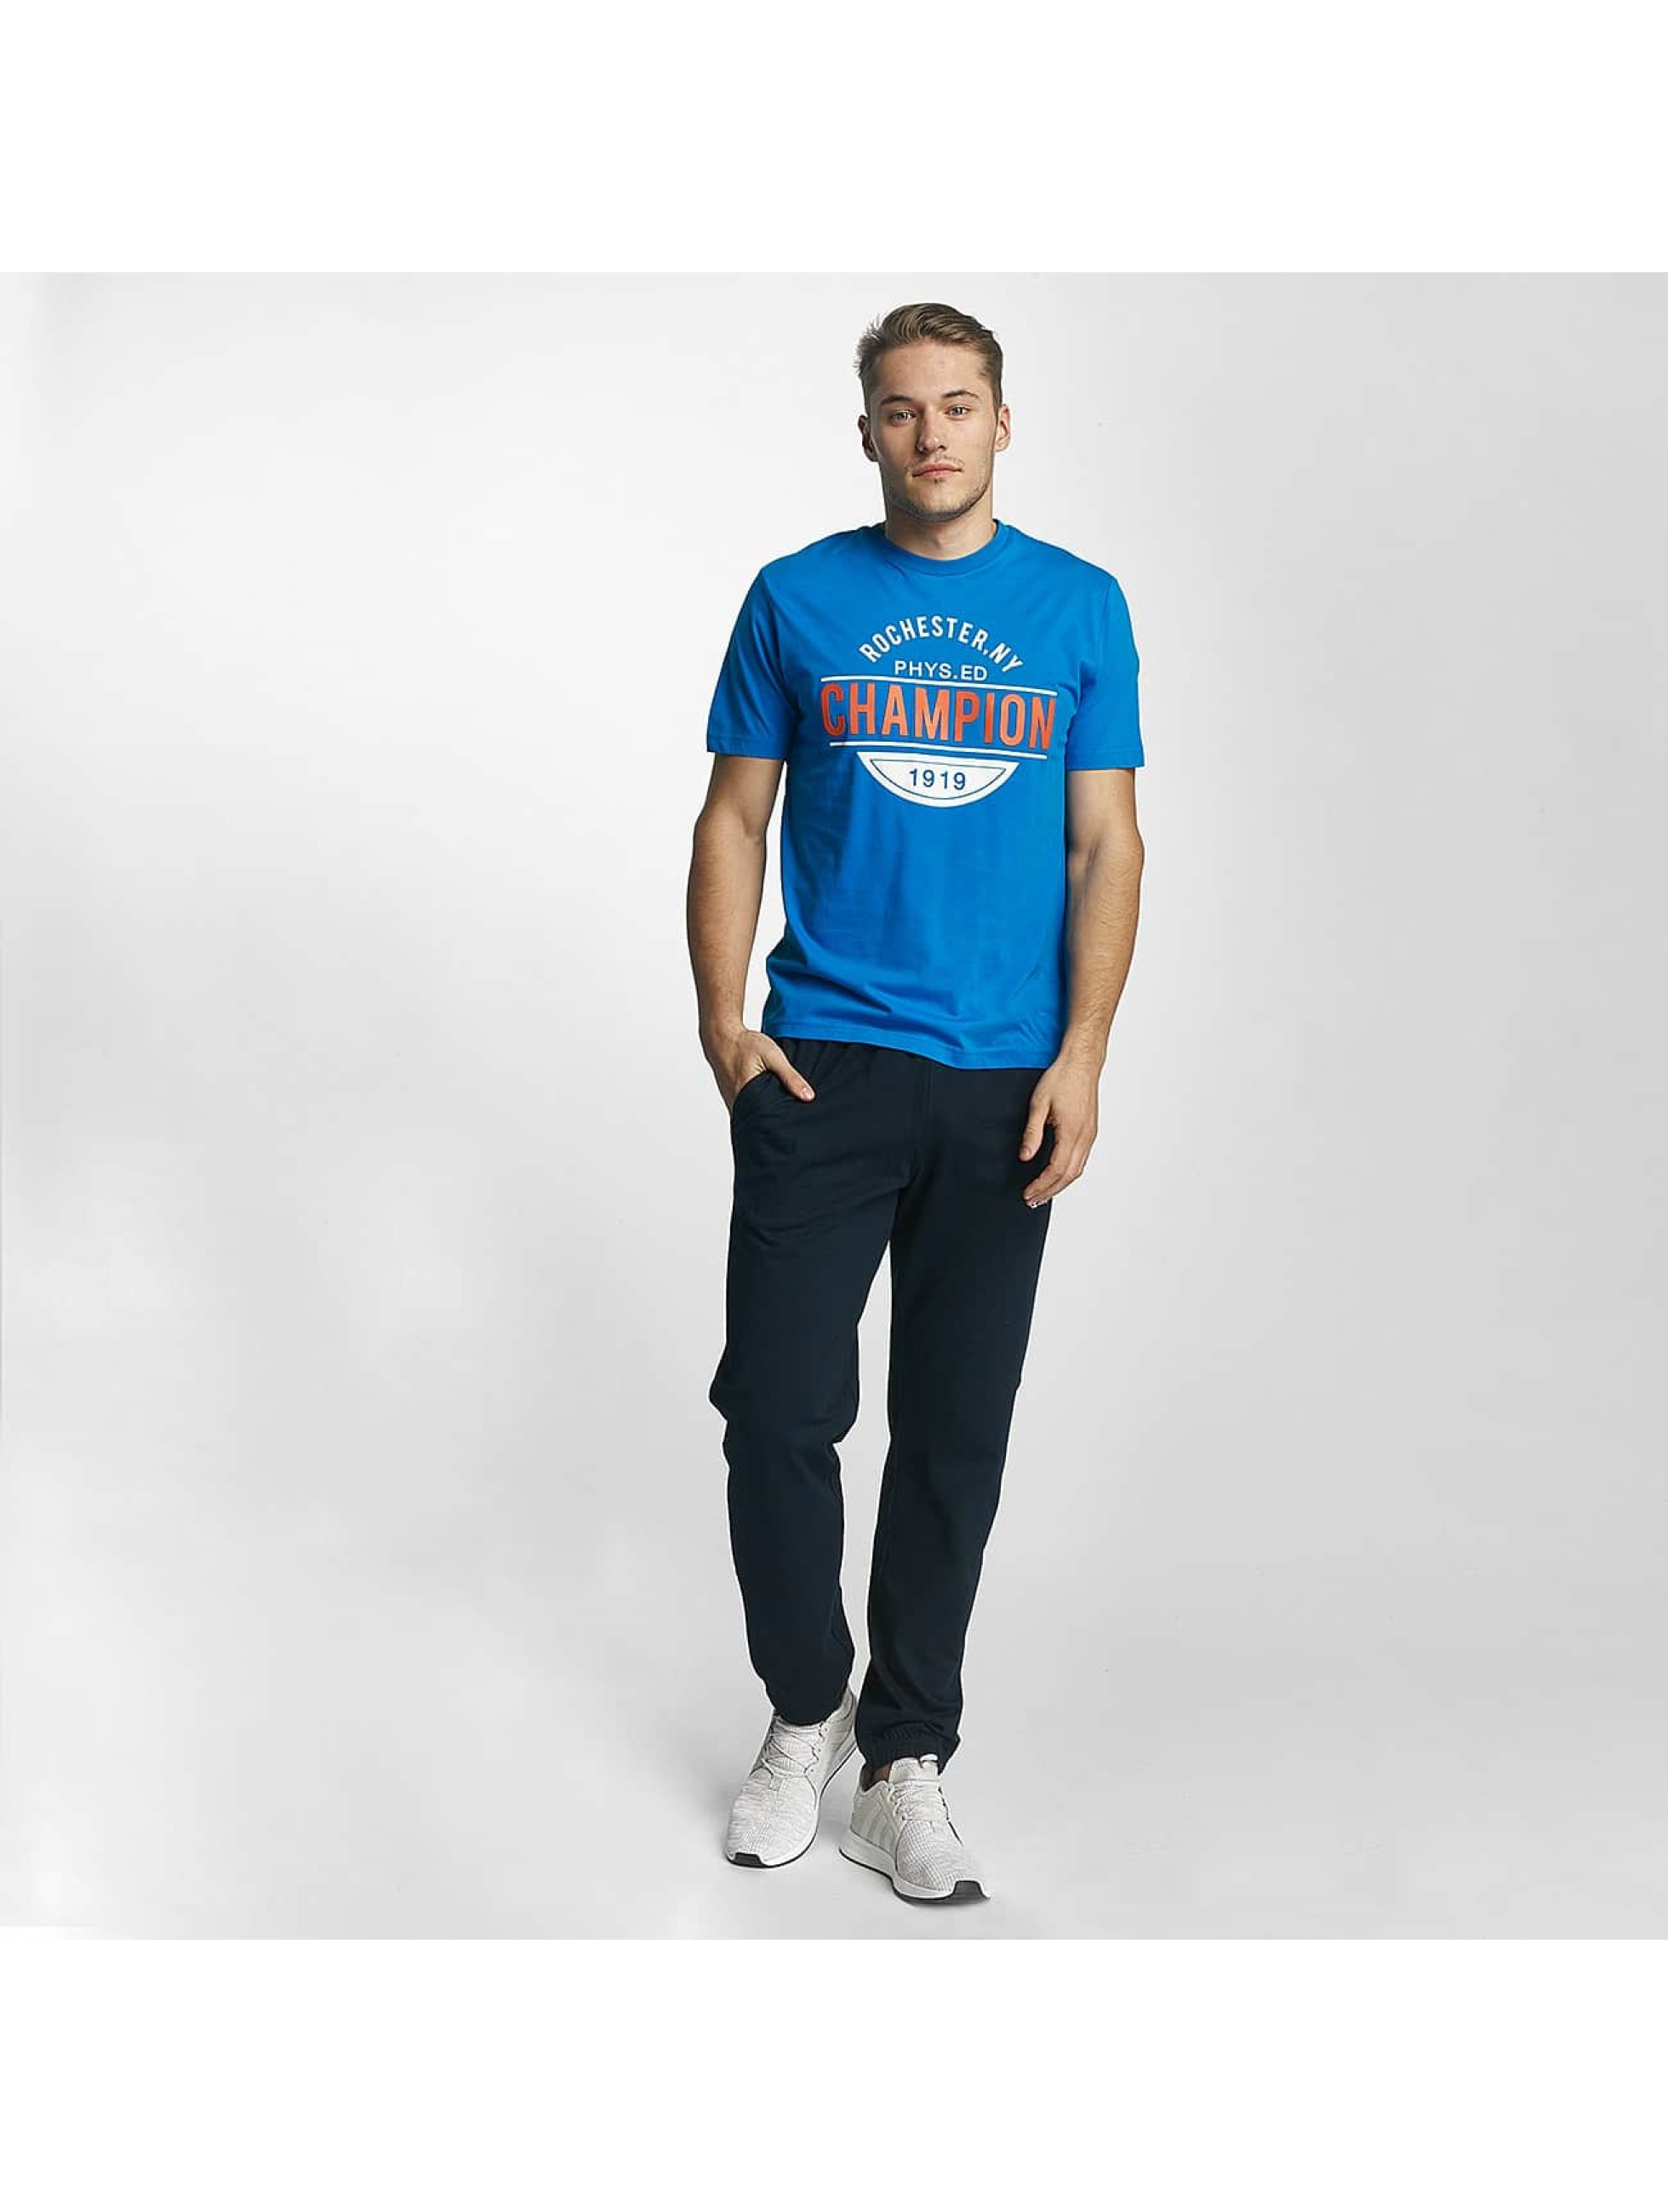 Champion Athletics T-Shirt Rochester New York blue